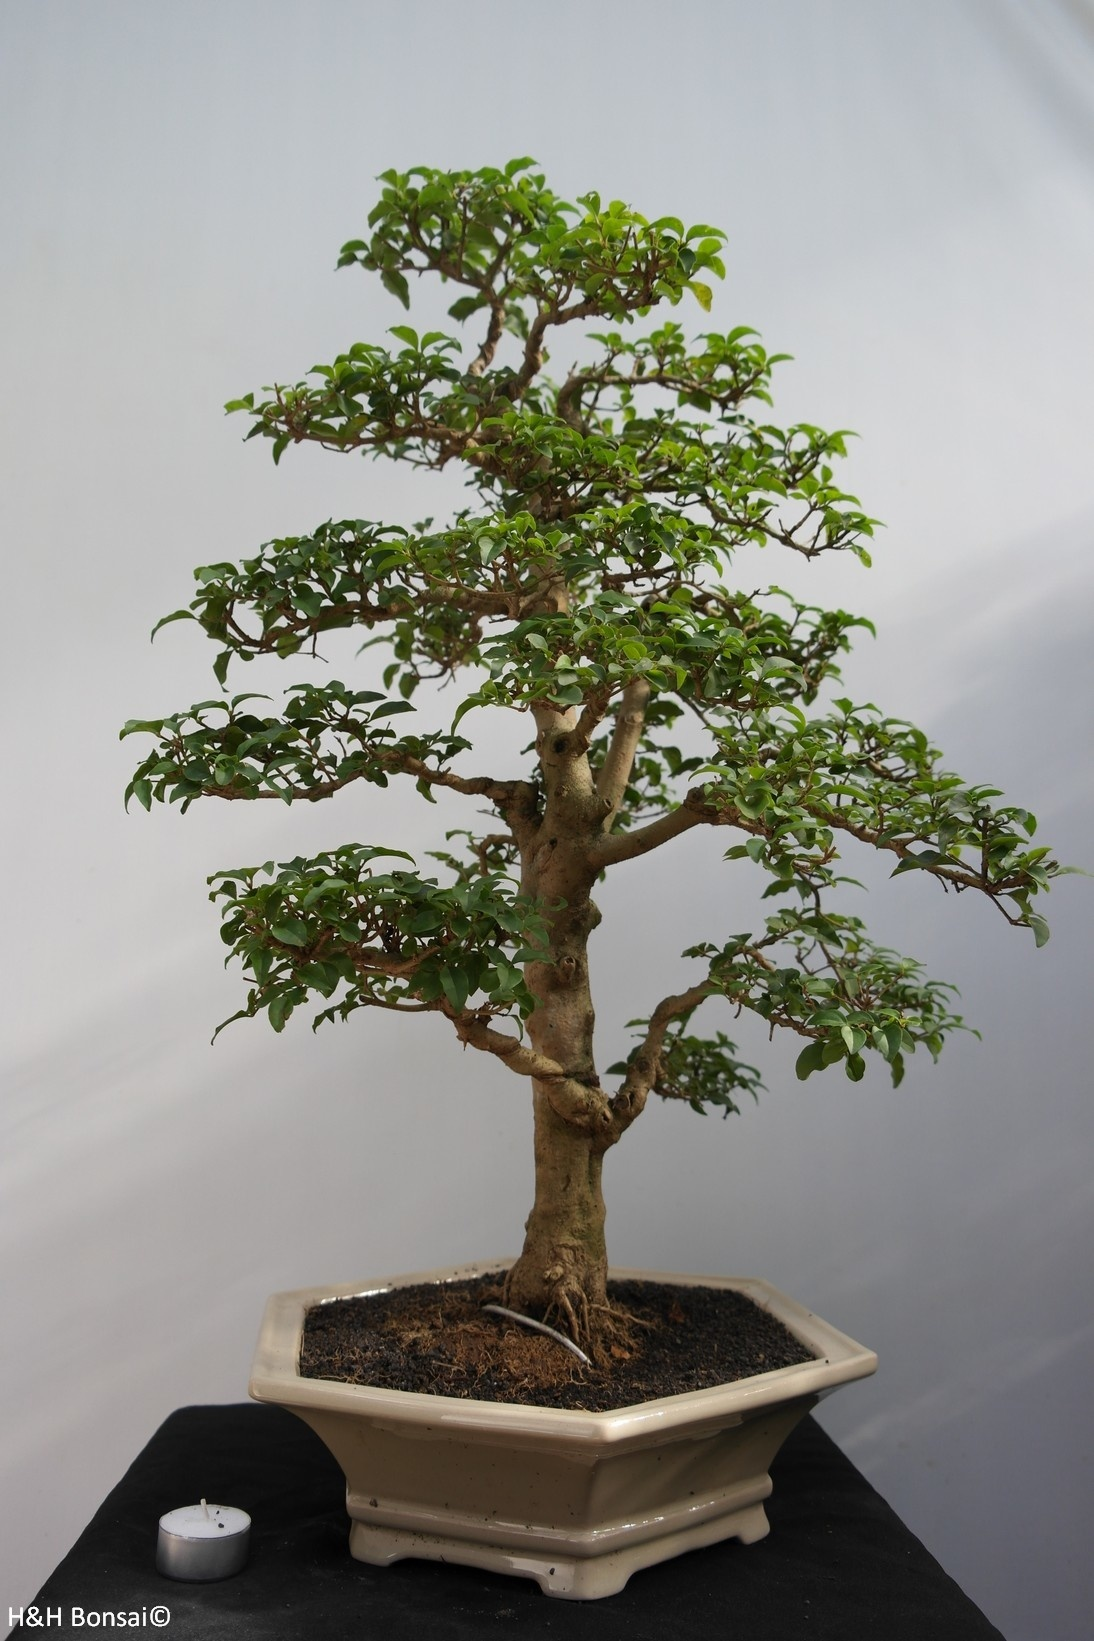 Bonsai Ligustro, Ligustrum sinense, no. 7843